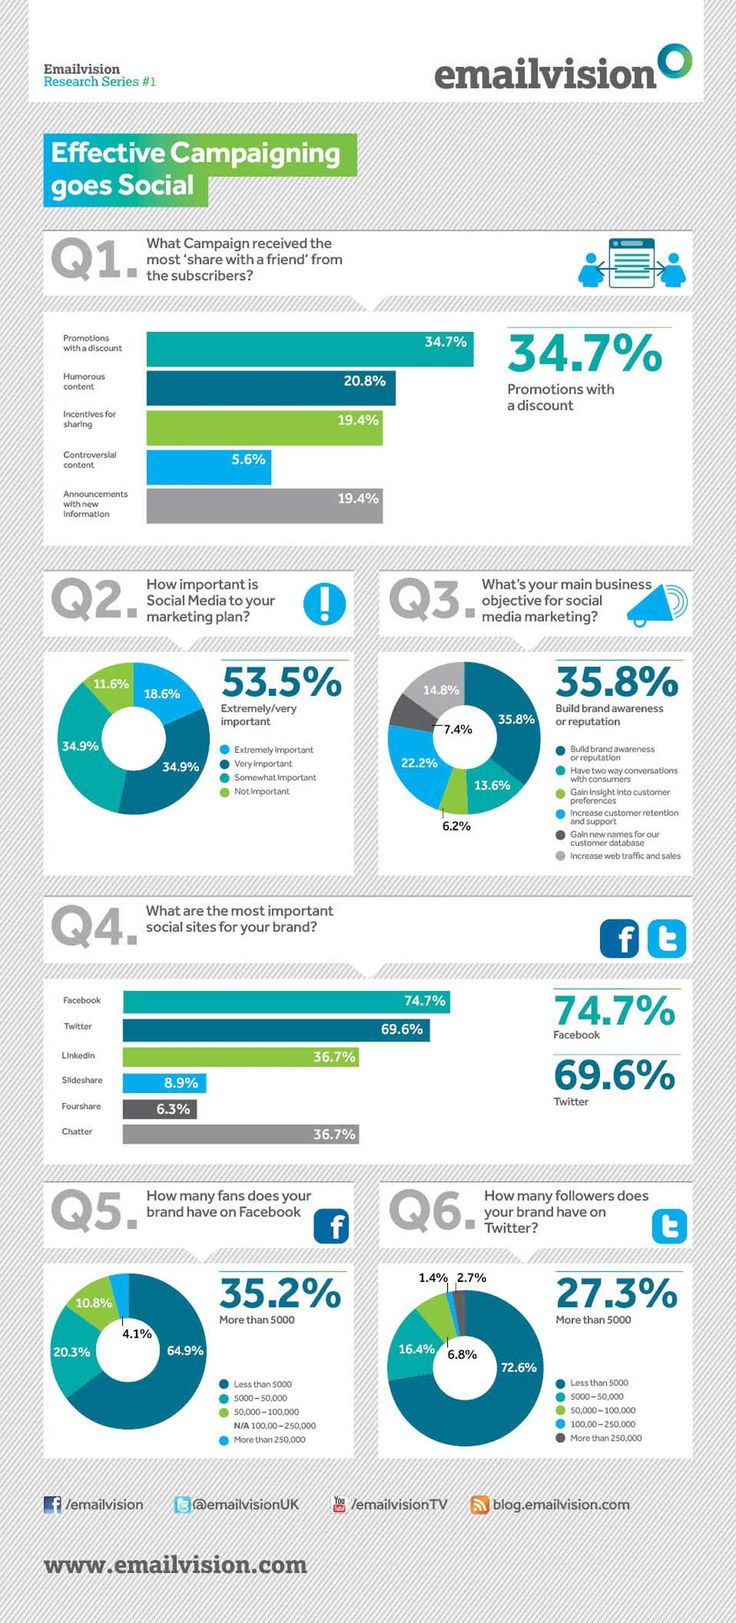 Majority of marketers see social media as a way to build brand awareness or reputation [infographic]